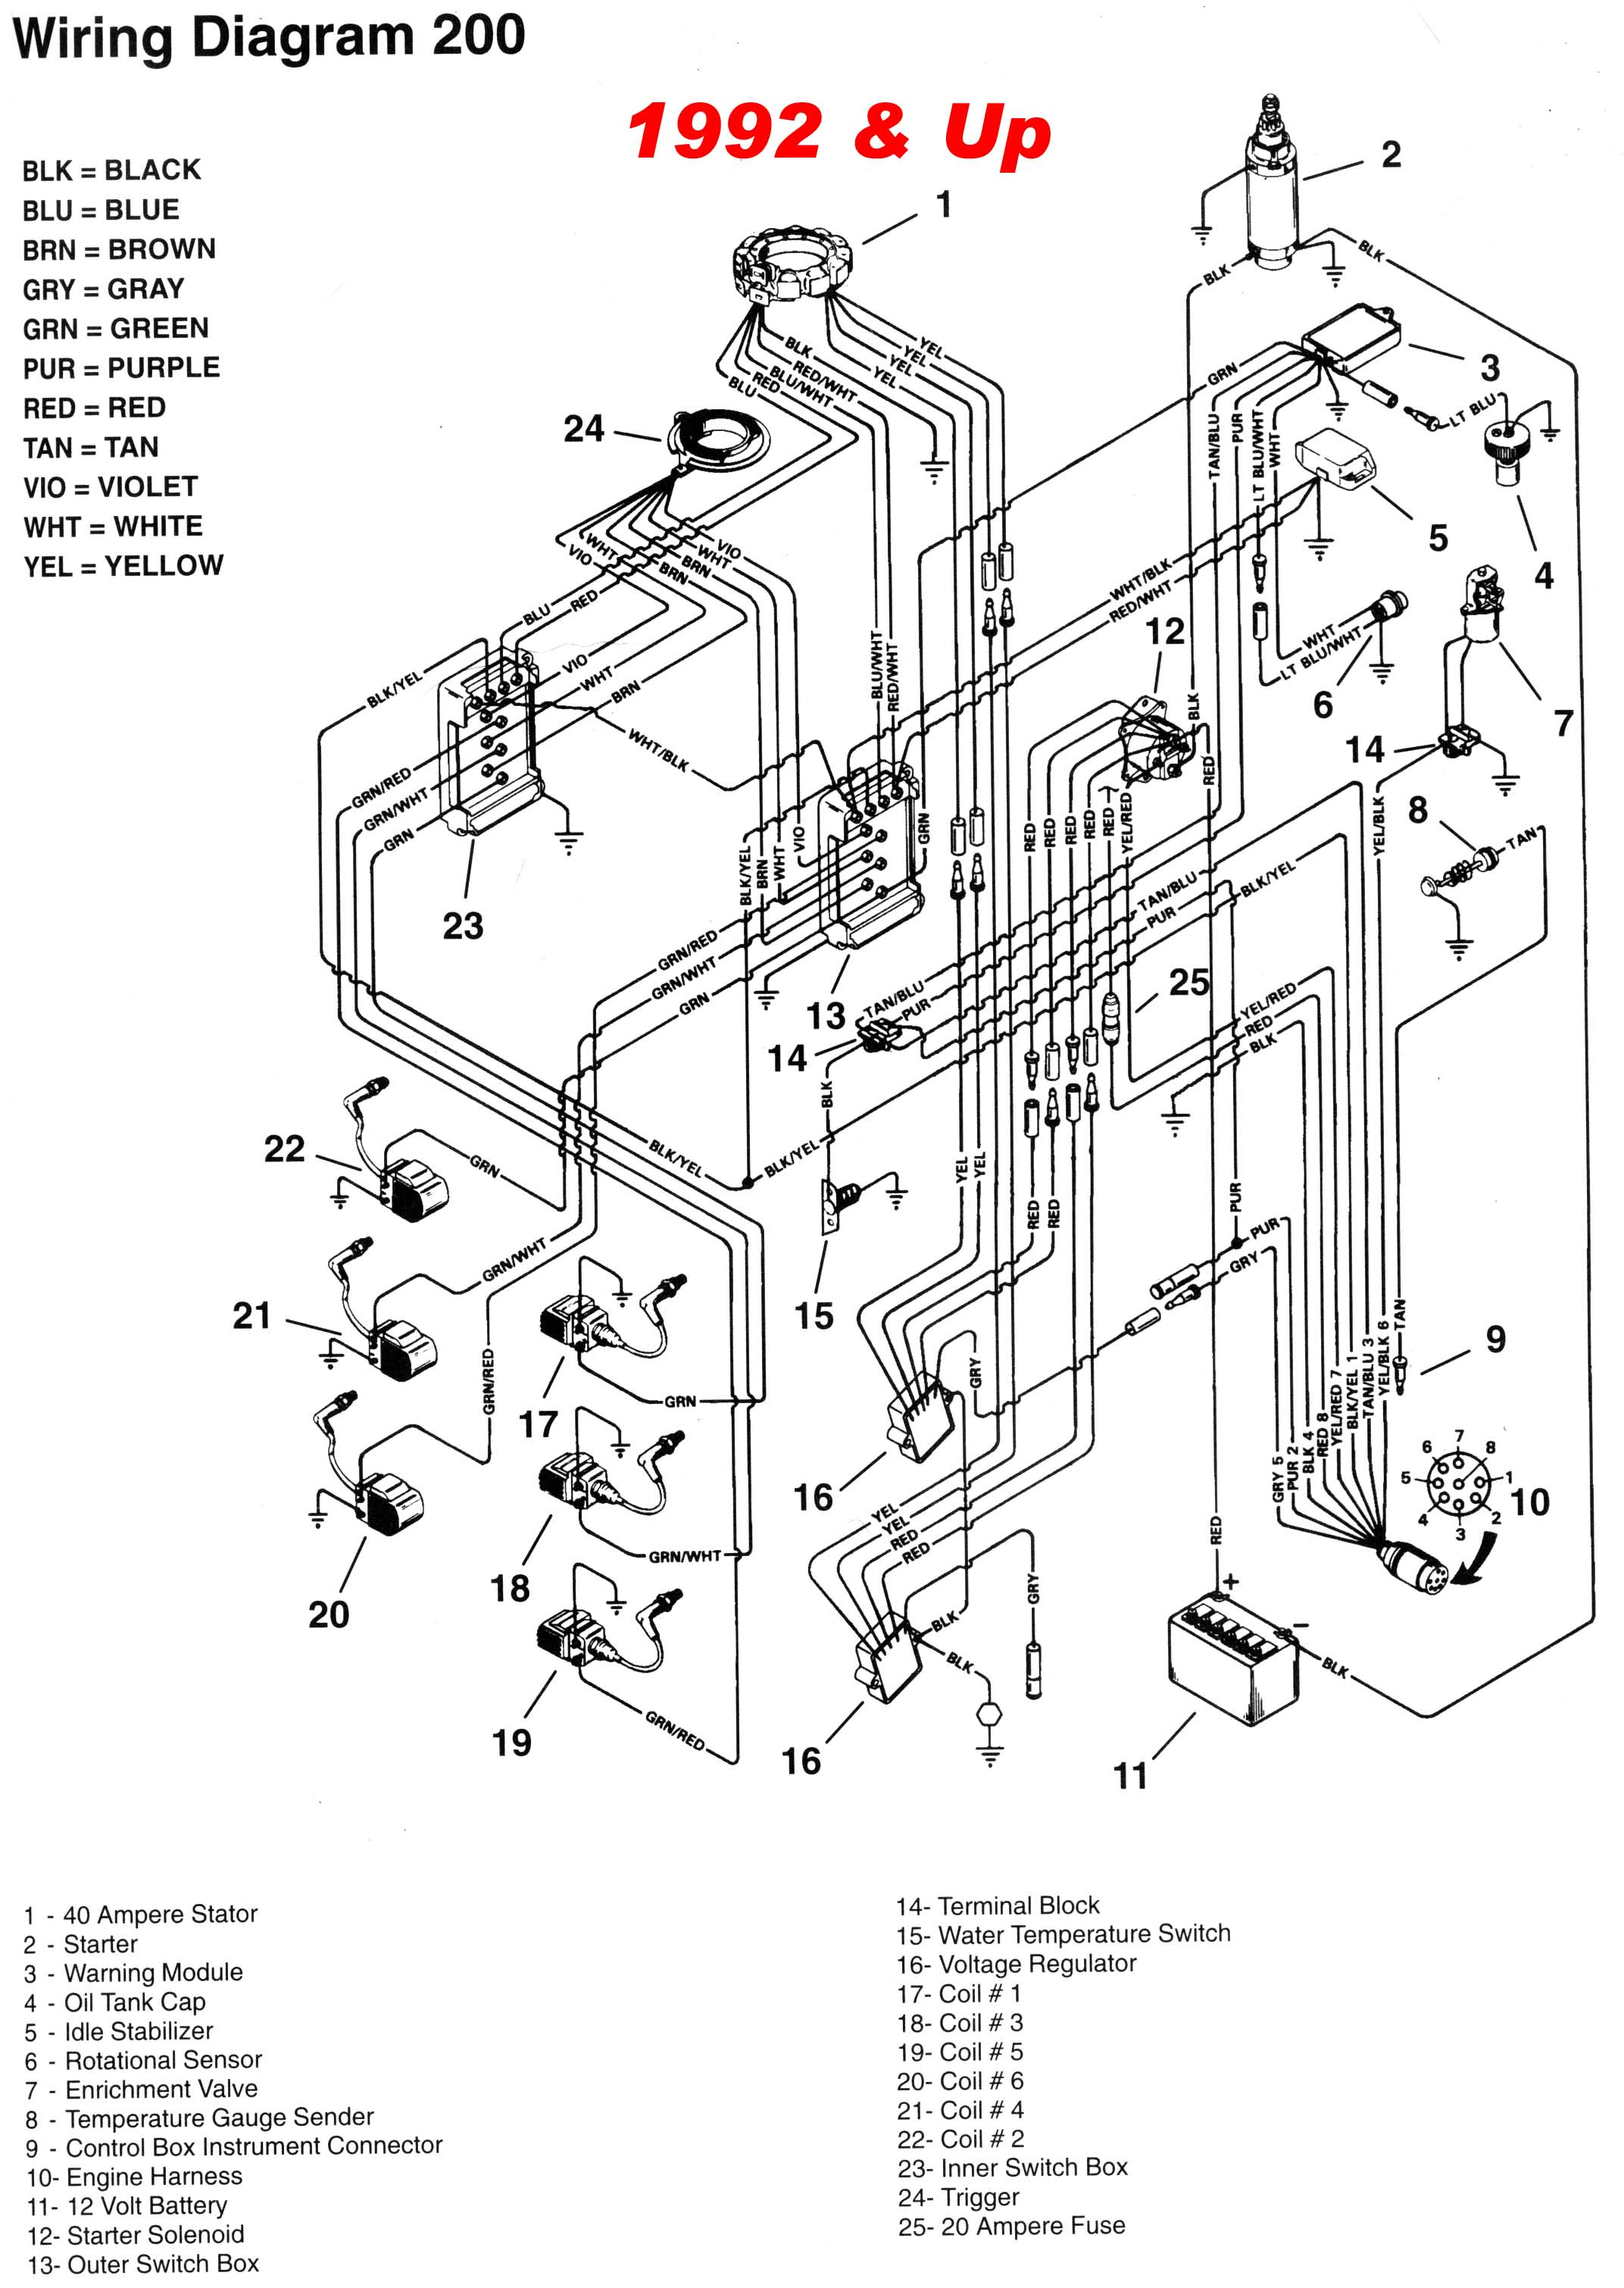 mercury_92up_200_wiring wiring diagram 2001 60 hp mercury outboard readingrat net  at gsmx.co